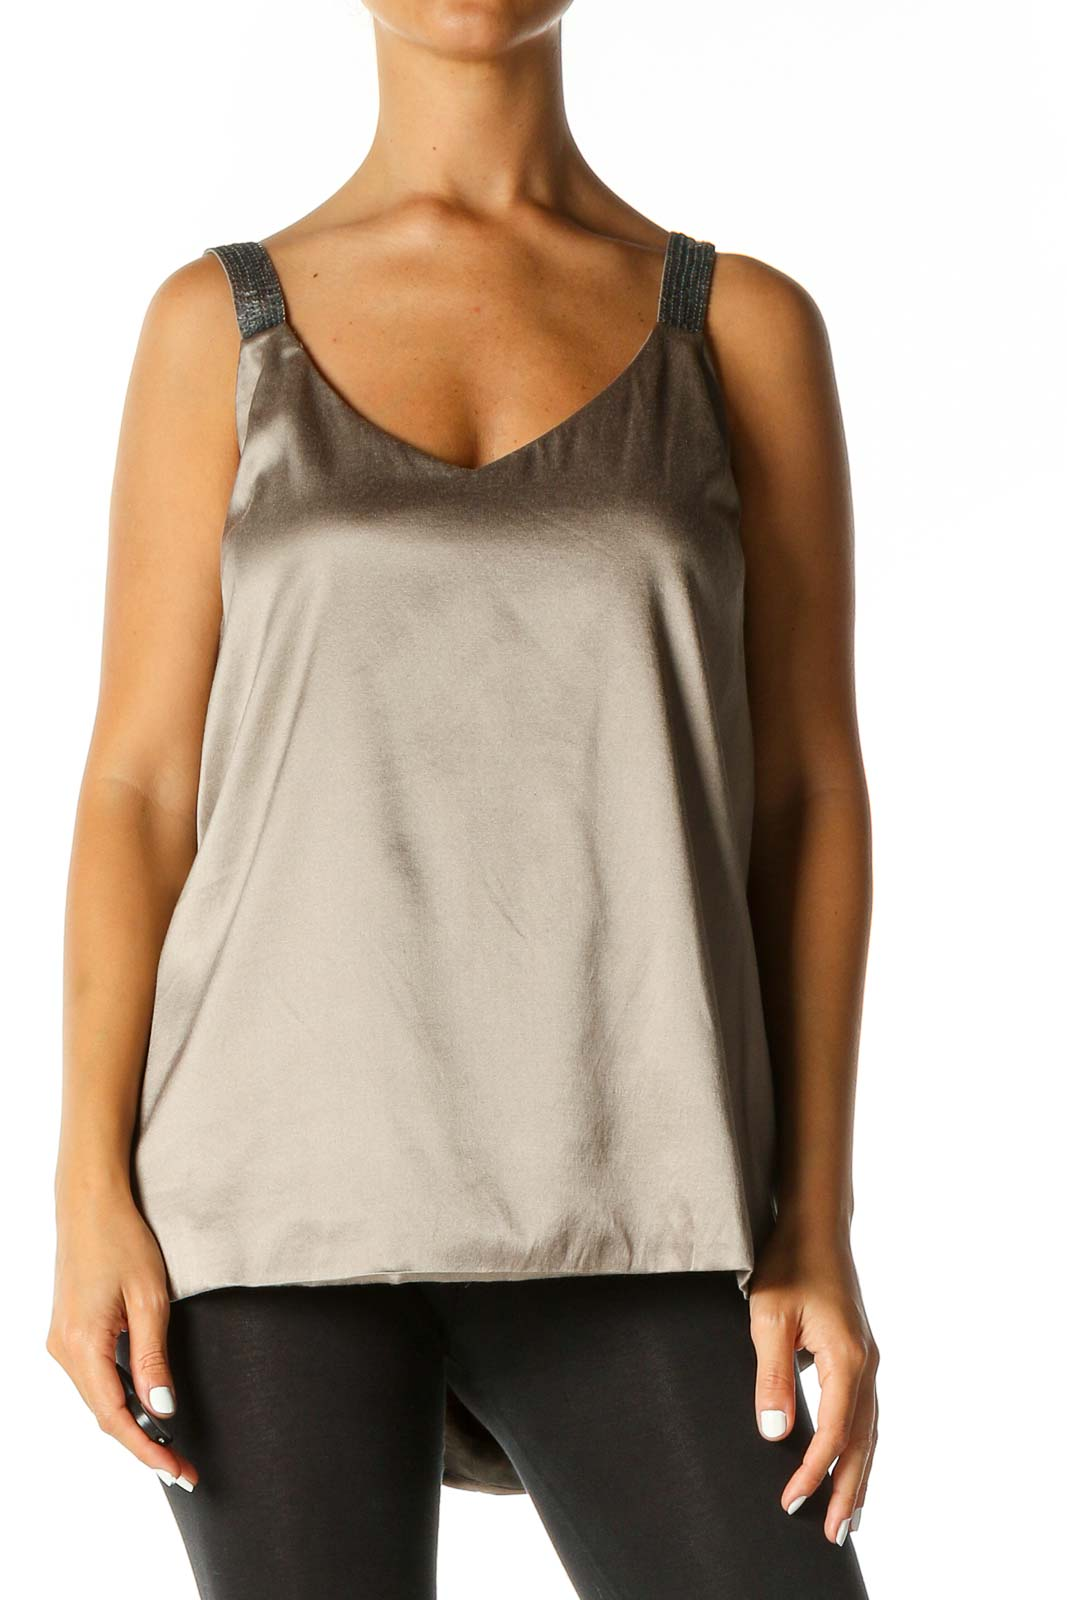 Beige Solid Casual Tank Top Front